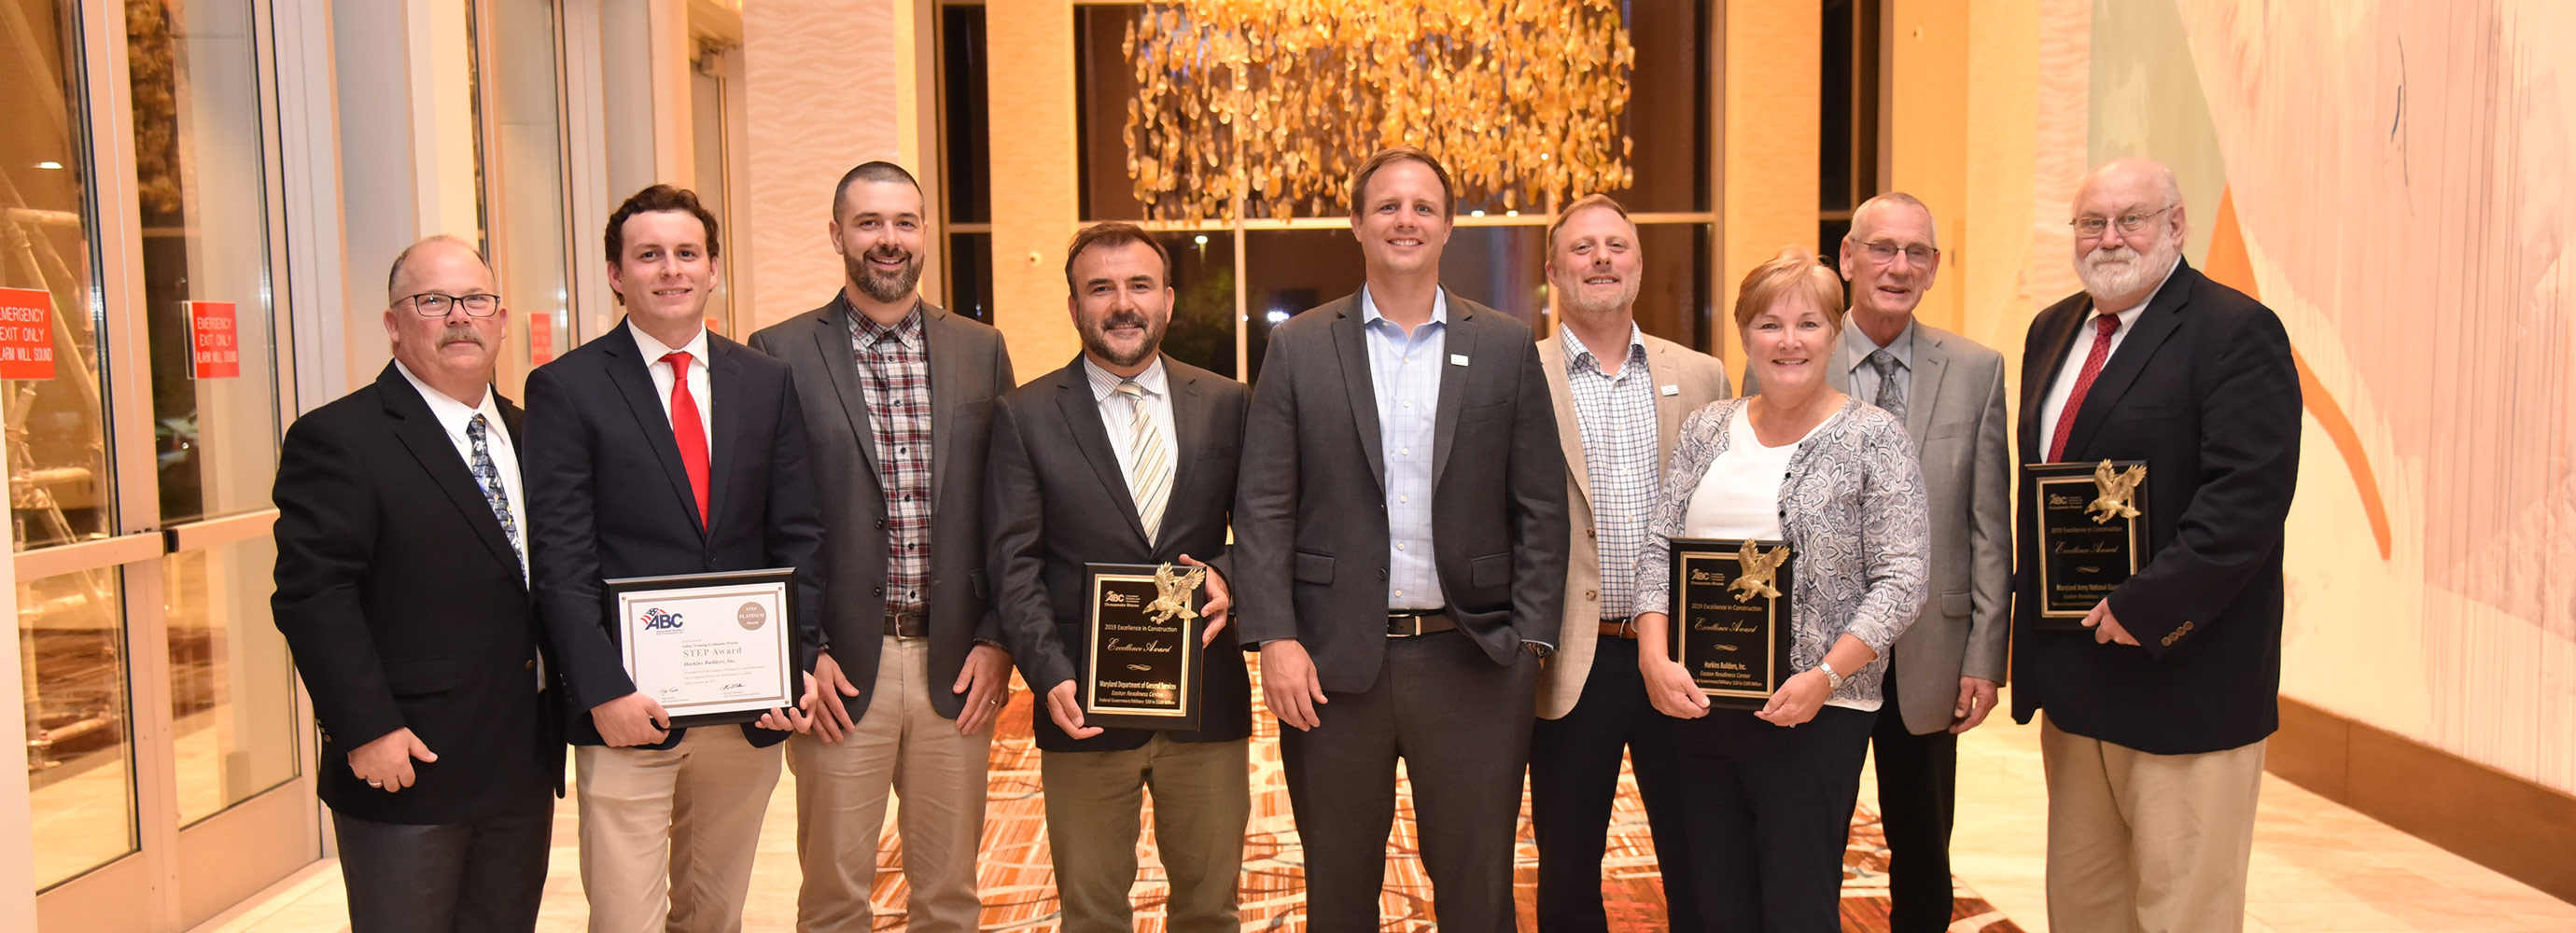 Harkins team accepts awards for Platinum STEP and construction excellence